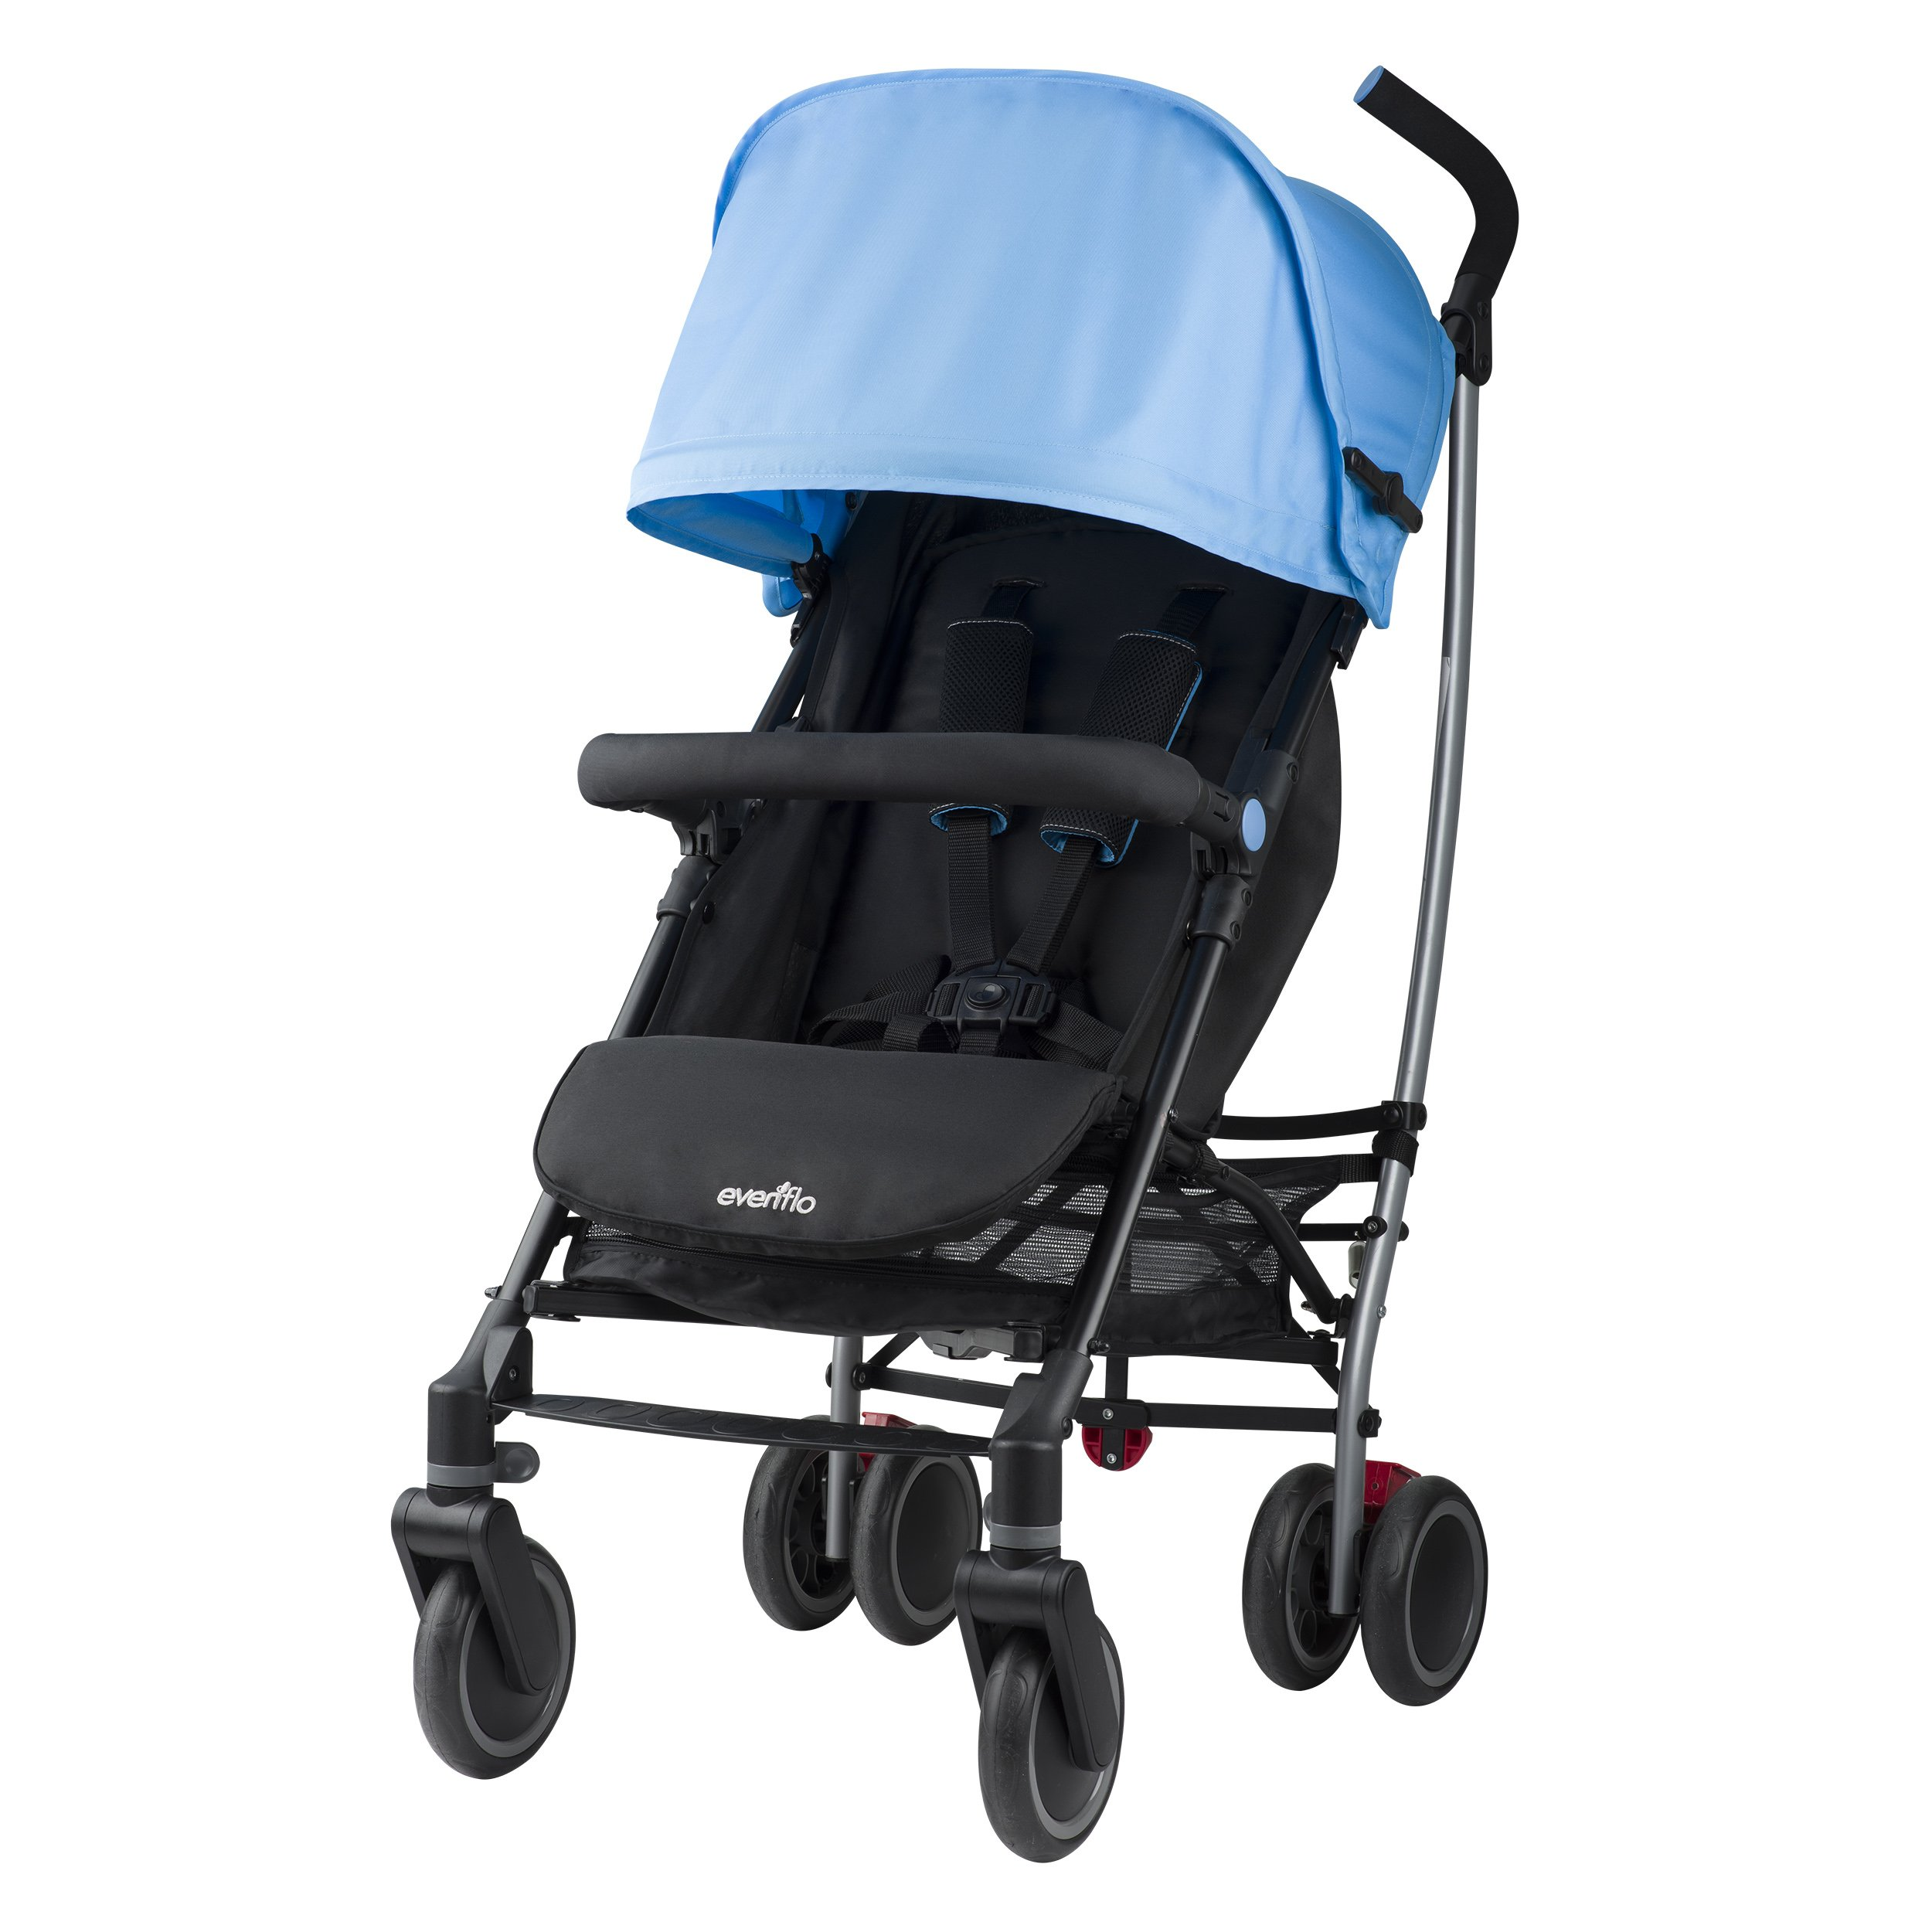 Evenflo Cambridge Stroller, Sky Blue by Evenflo (Image #3)